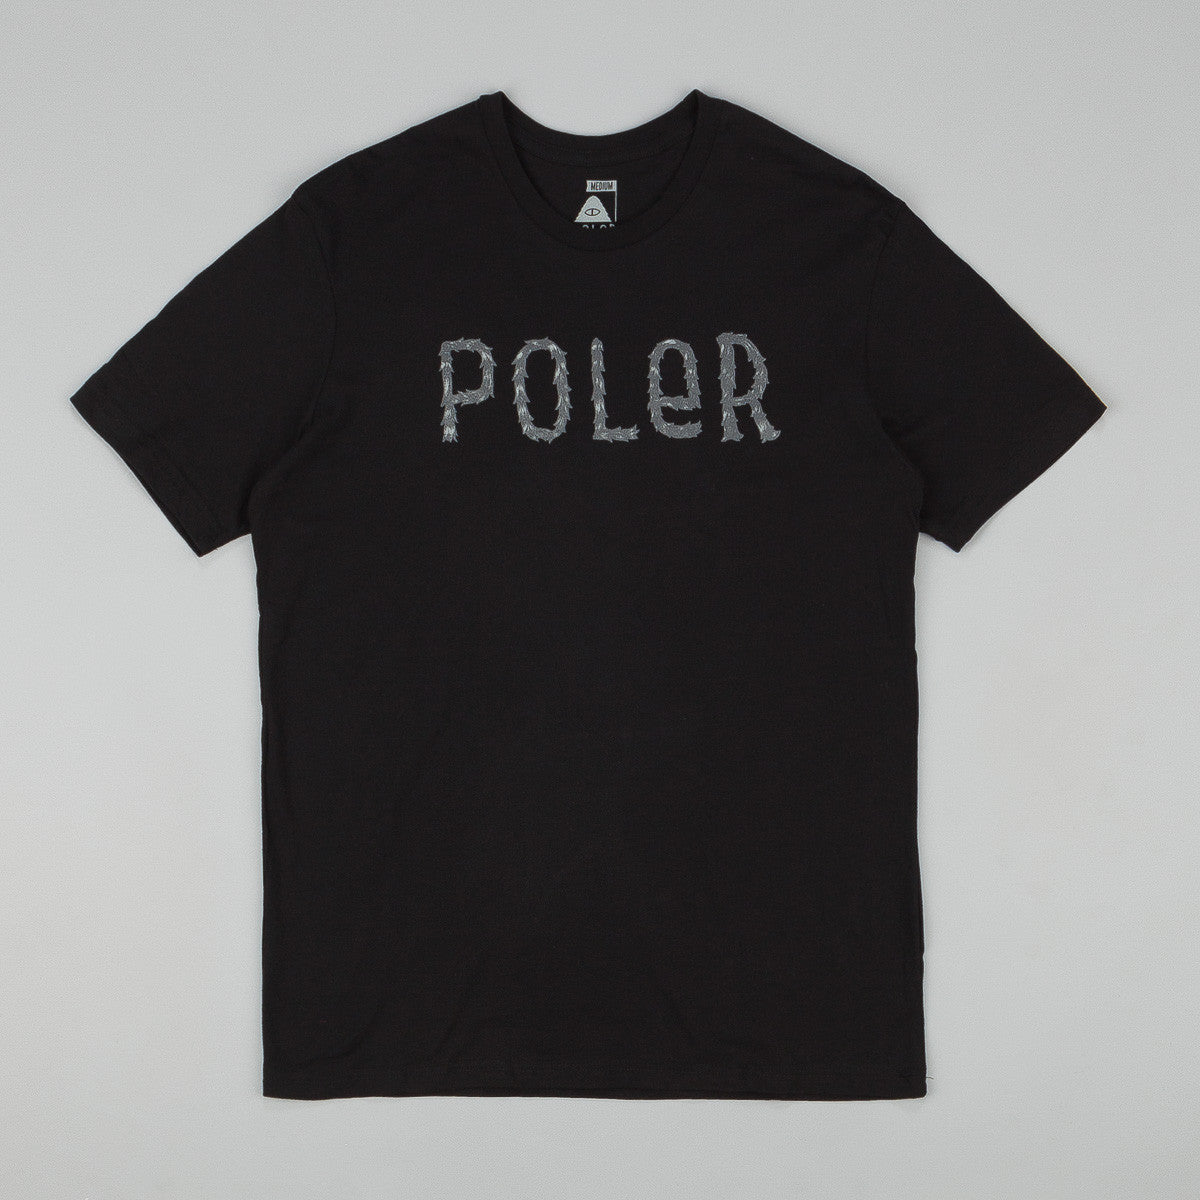 Poler Furry Font T-Shirt - Black